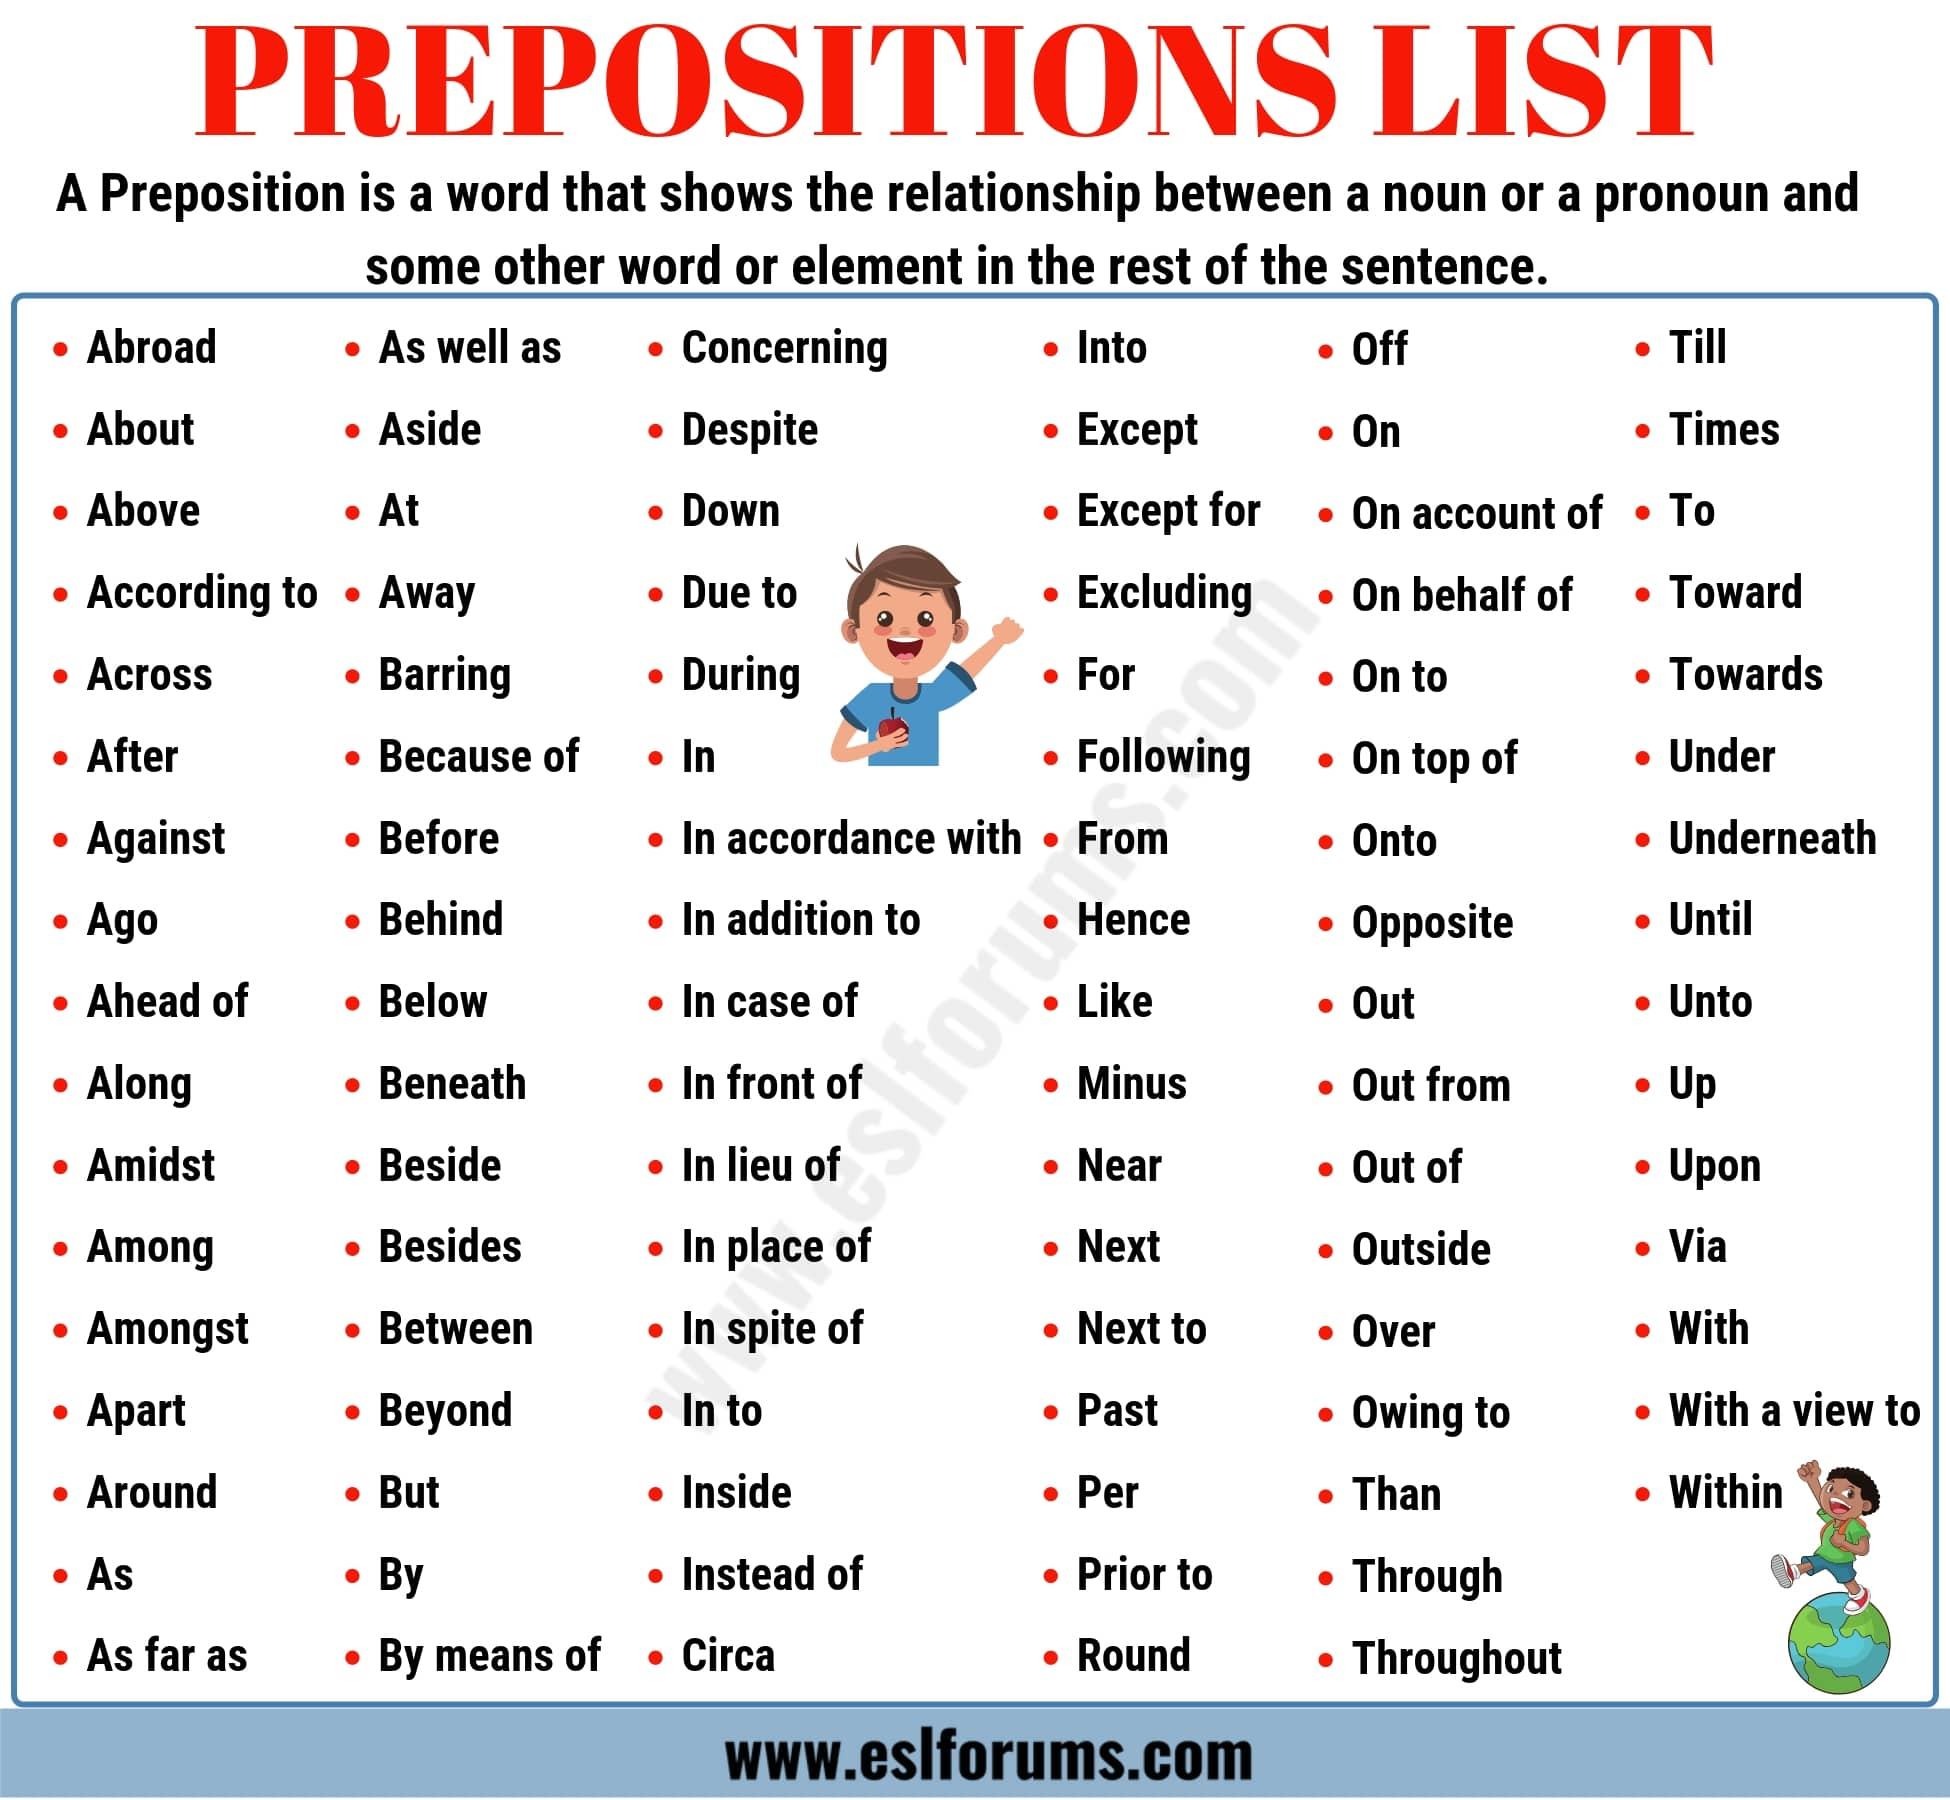 List of Prepositions: 100 Important Prepositions in English for ESL  Learners! - ESL Forums